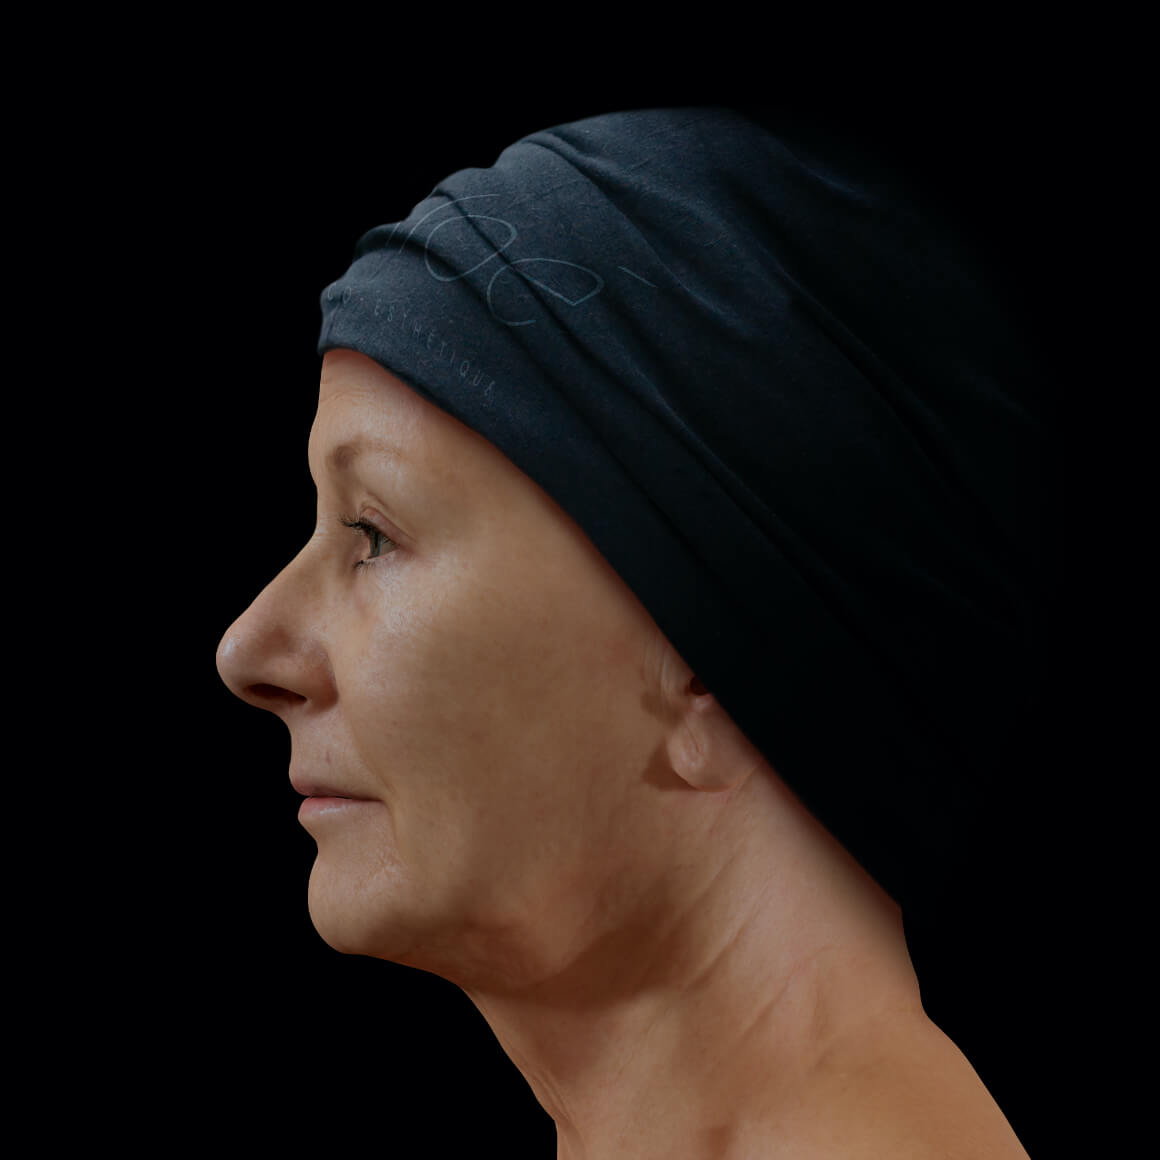 A female patient at Clinique Chloé, positioned sideways, showing wrinkles and fine lines on her face